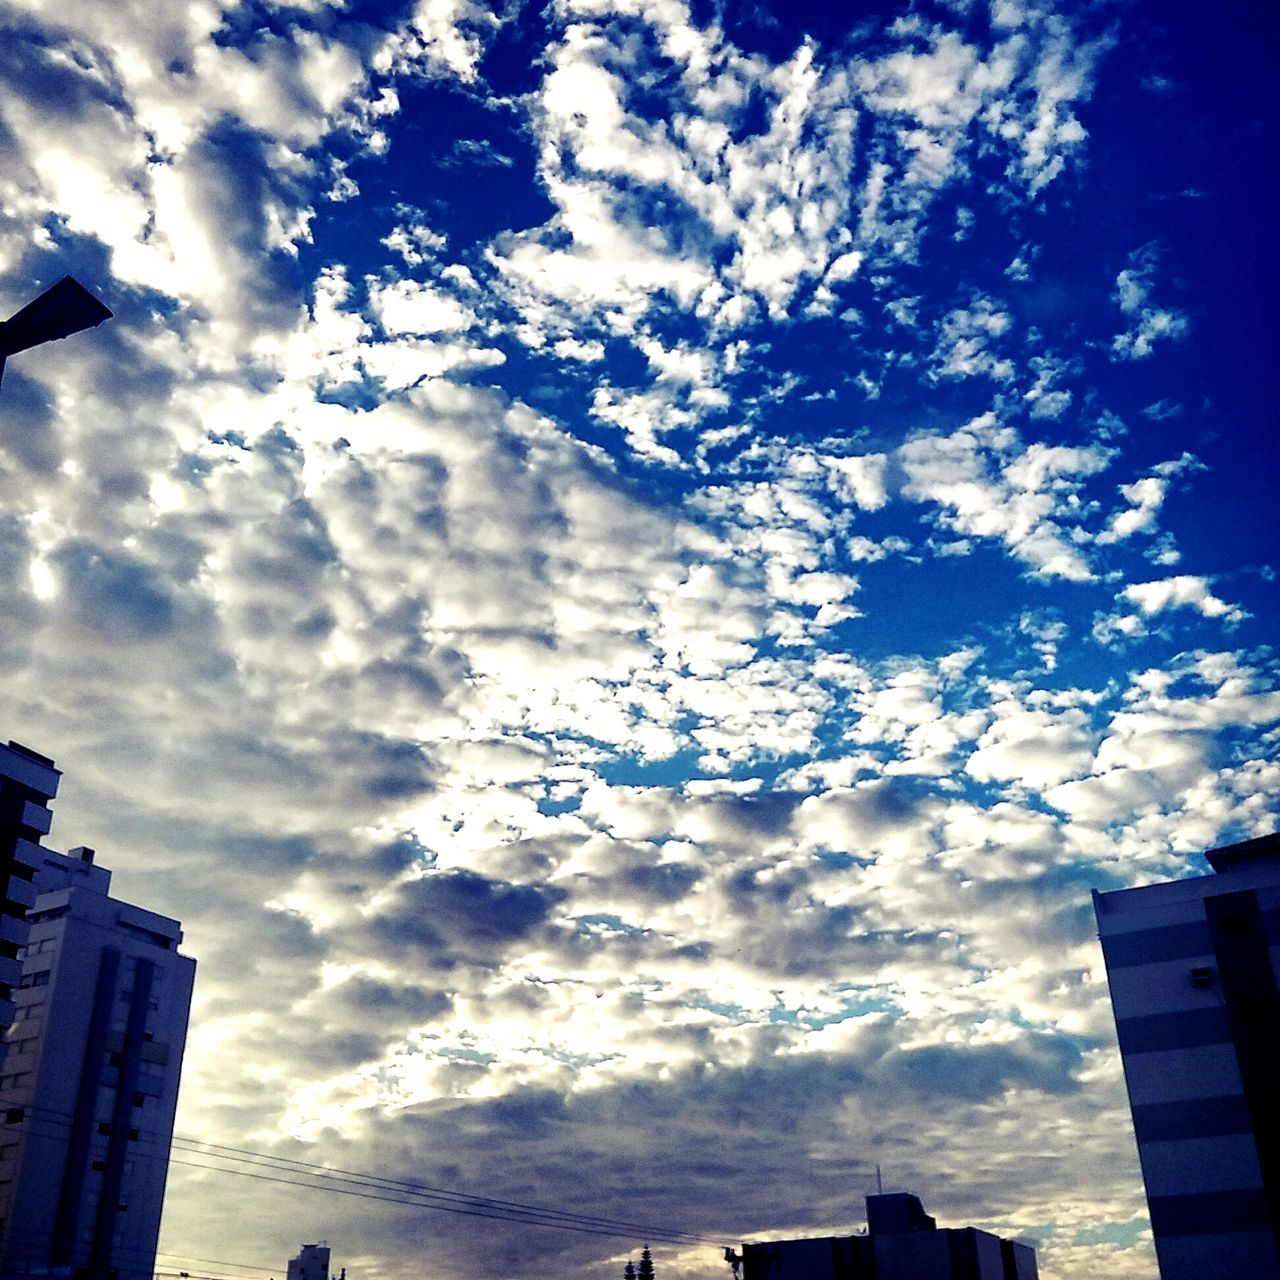 low angle view, architecture, building exterior, no people, sky, cloud - sky, built structure, outdoors, day, city, nature